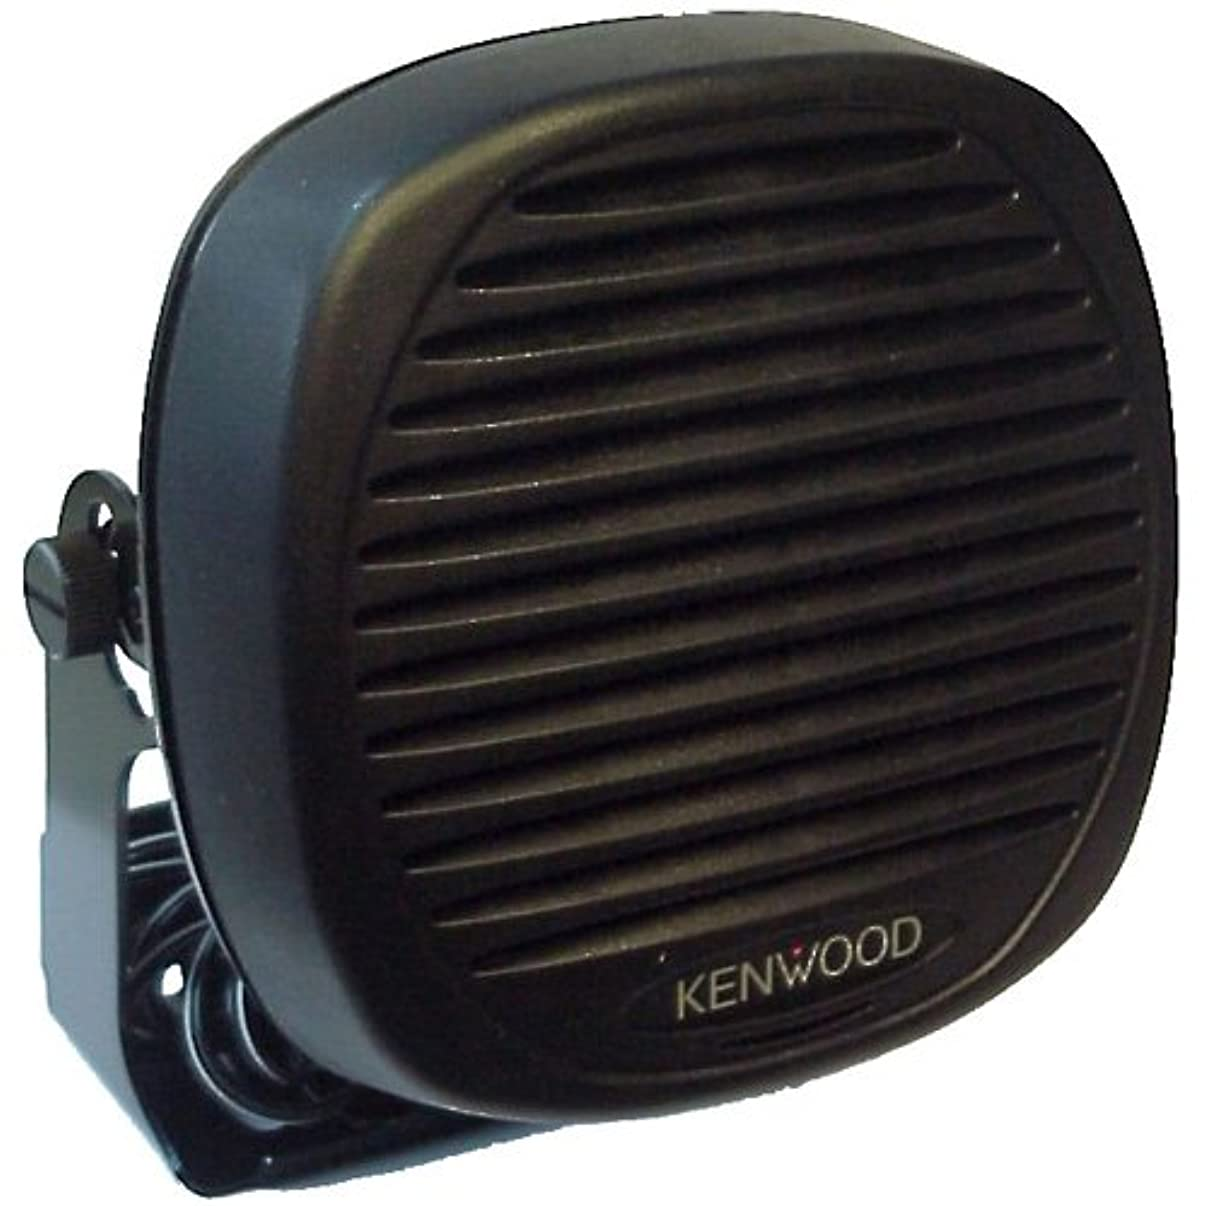 Kenwood Original KES-5 External Mobile Speaker - Max. Input Power: 40 Watts, Impedance: 4 Ohms